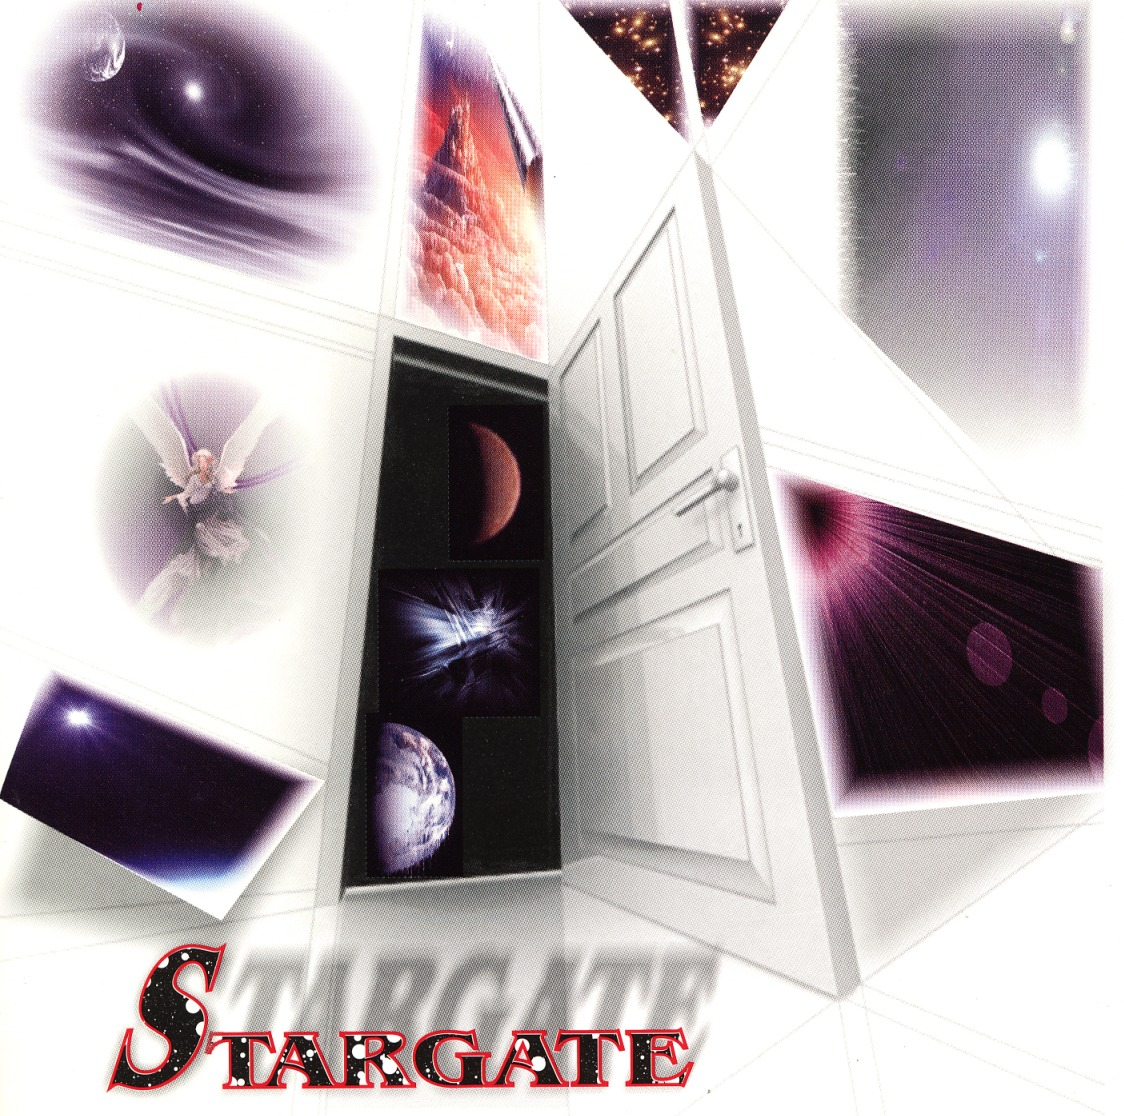 STARGATE (Greece) / Stargate